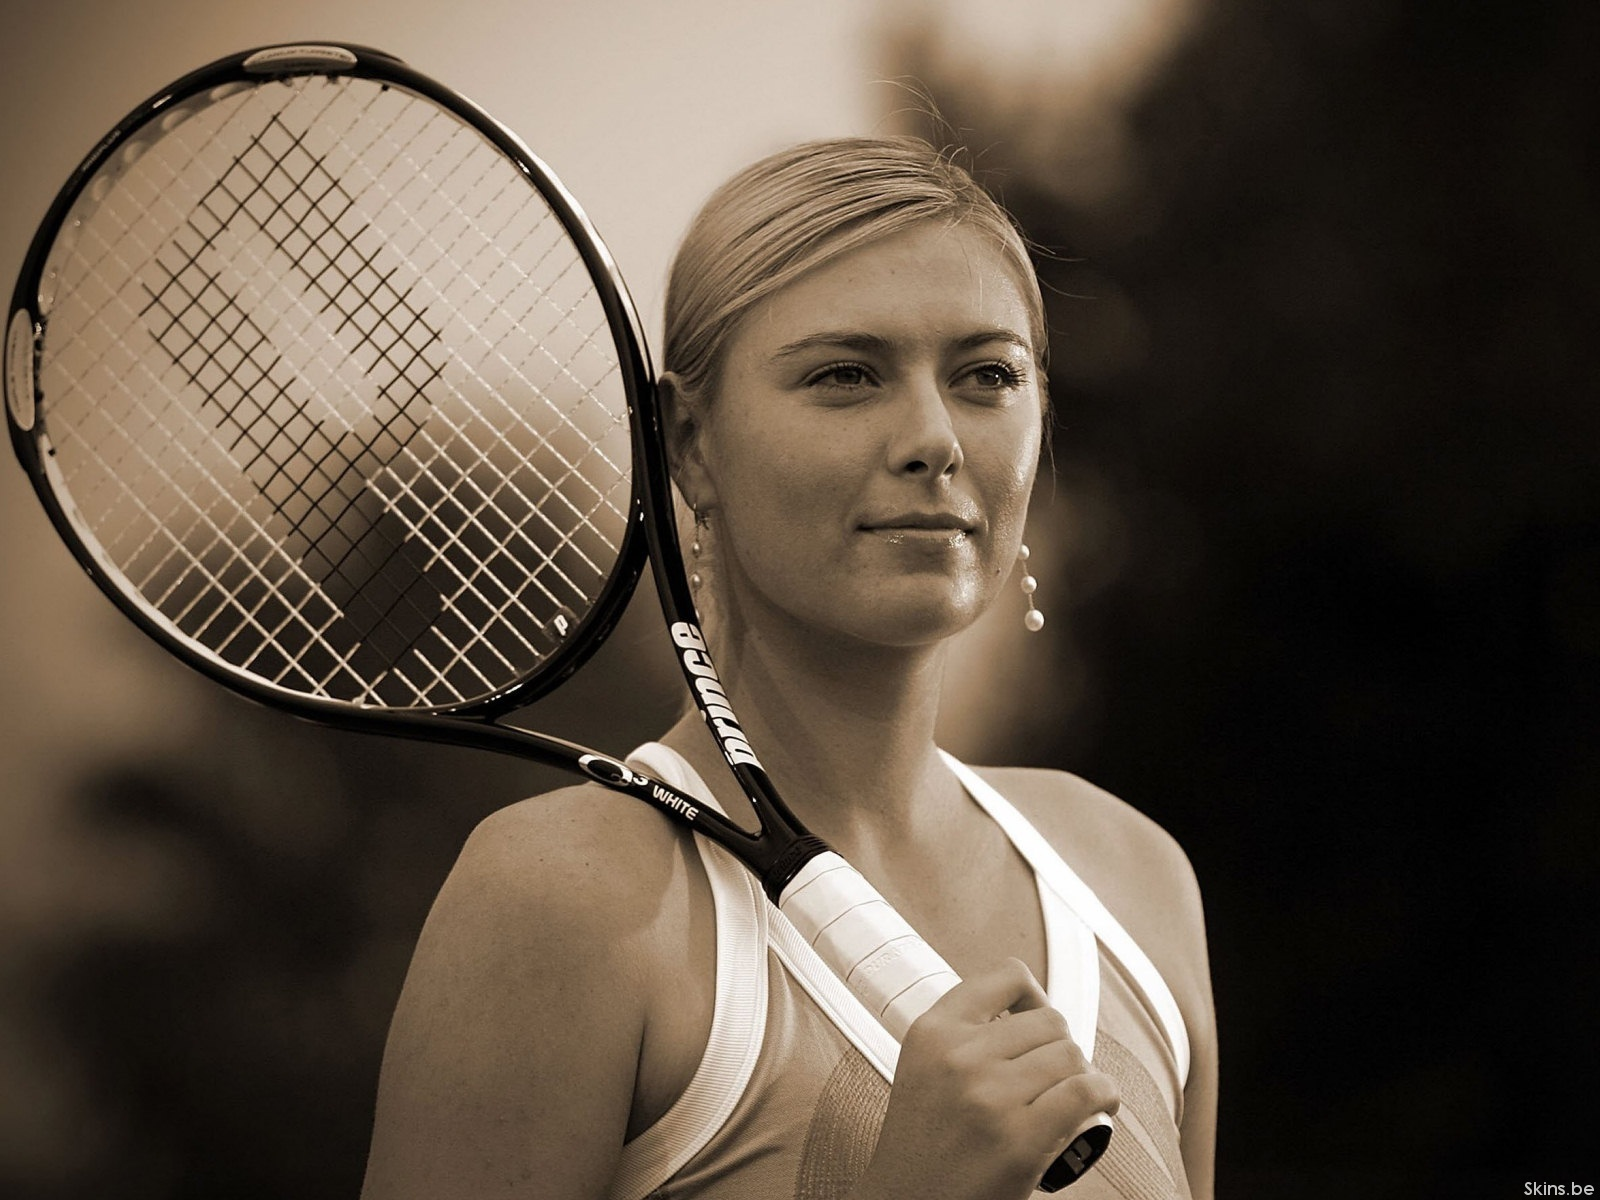 Maria Sharapova Is The Most Dazzling Tennis Player  The -5375